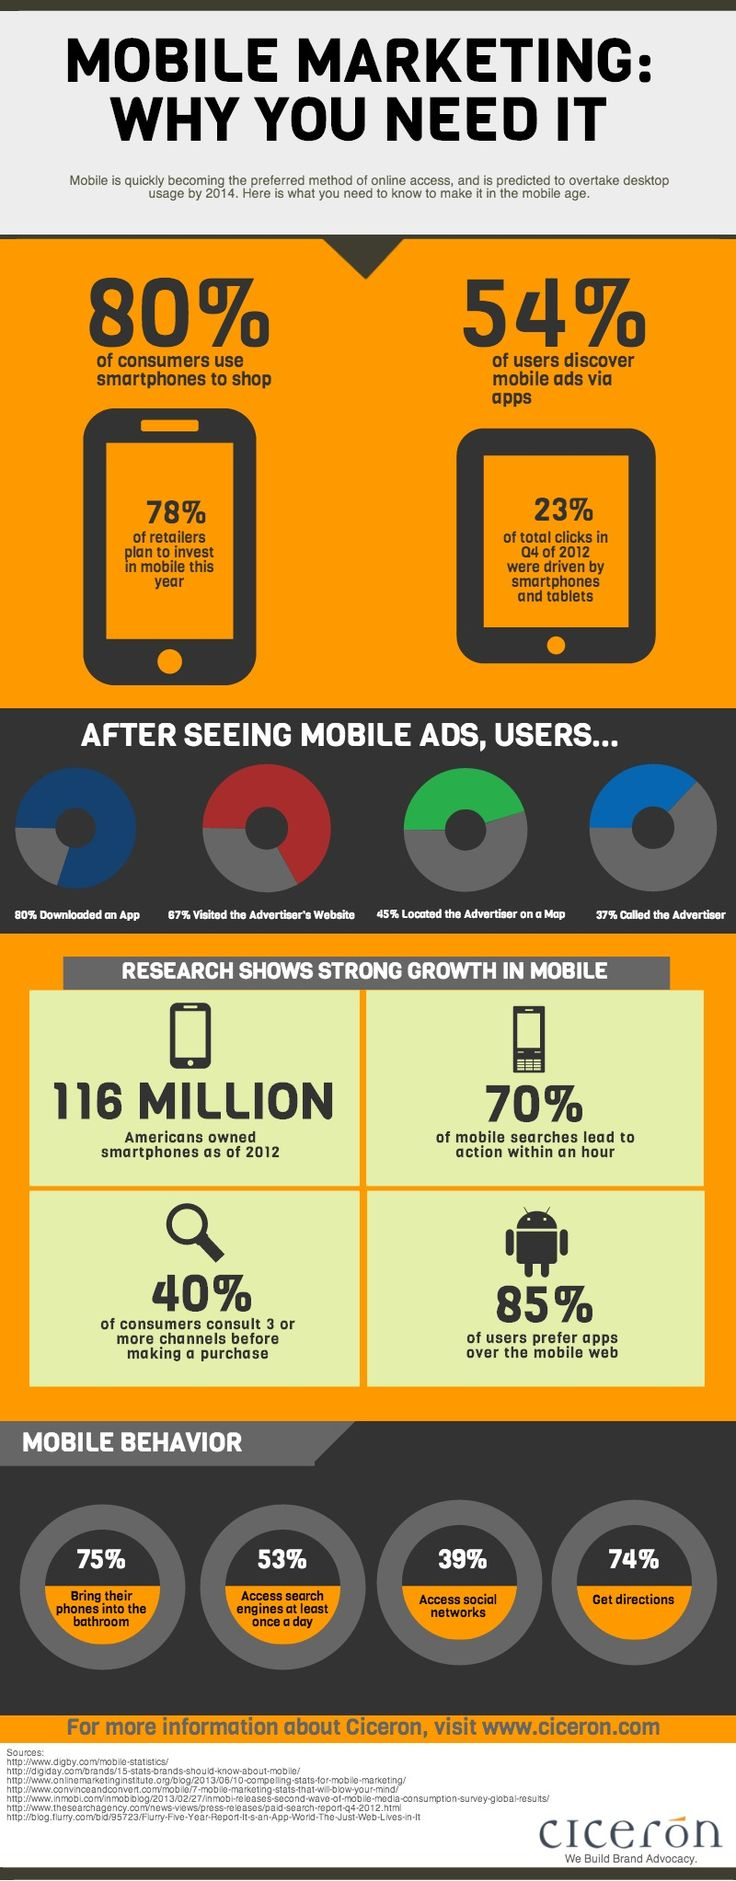 Mobile Marketing: Why You Need It